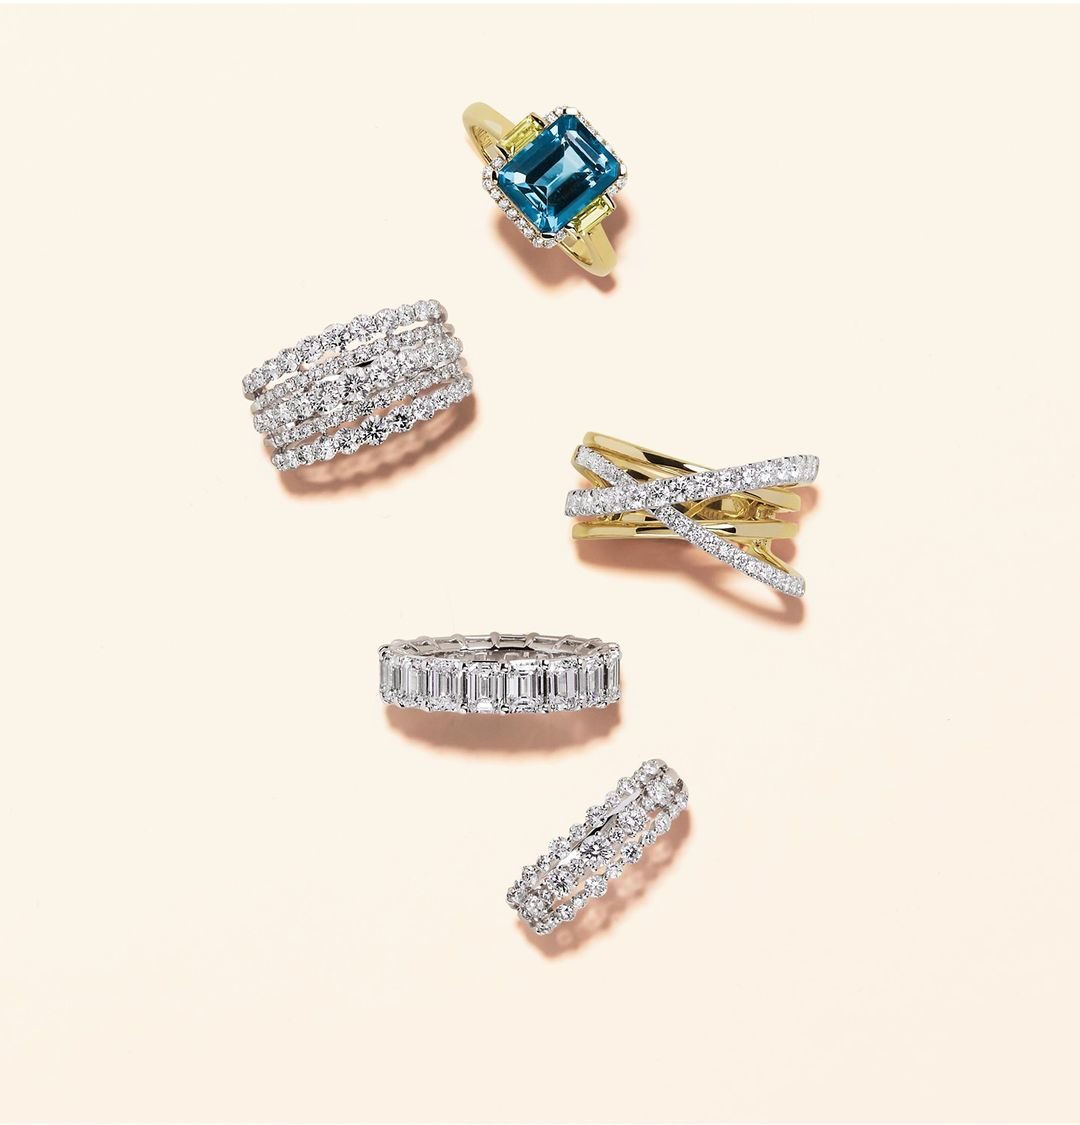 Blue Nile: Up to 30% OFF Jewelry Sale